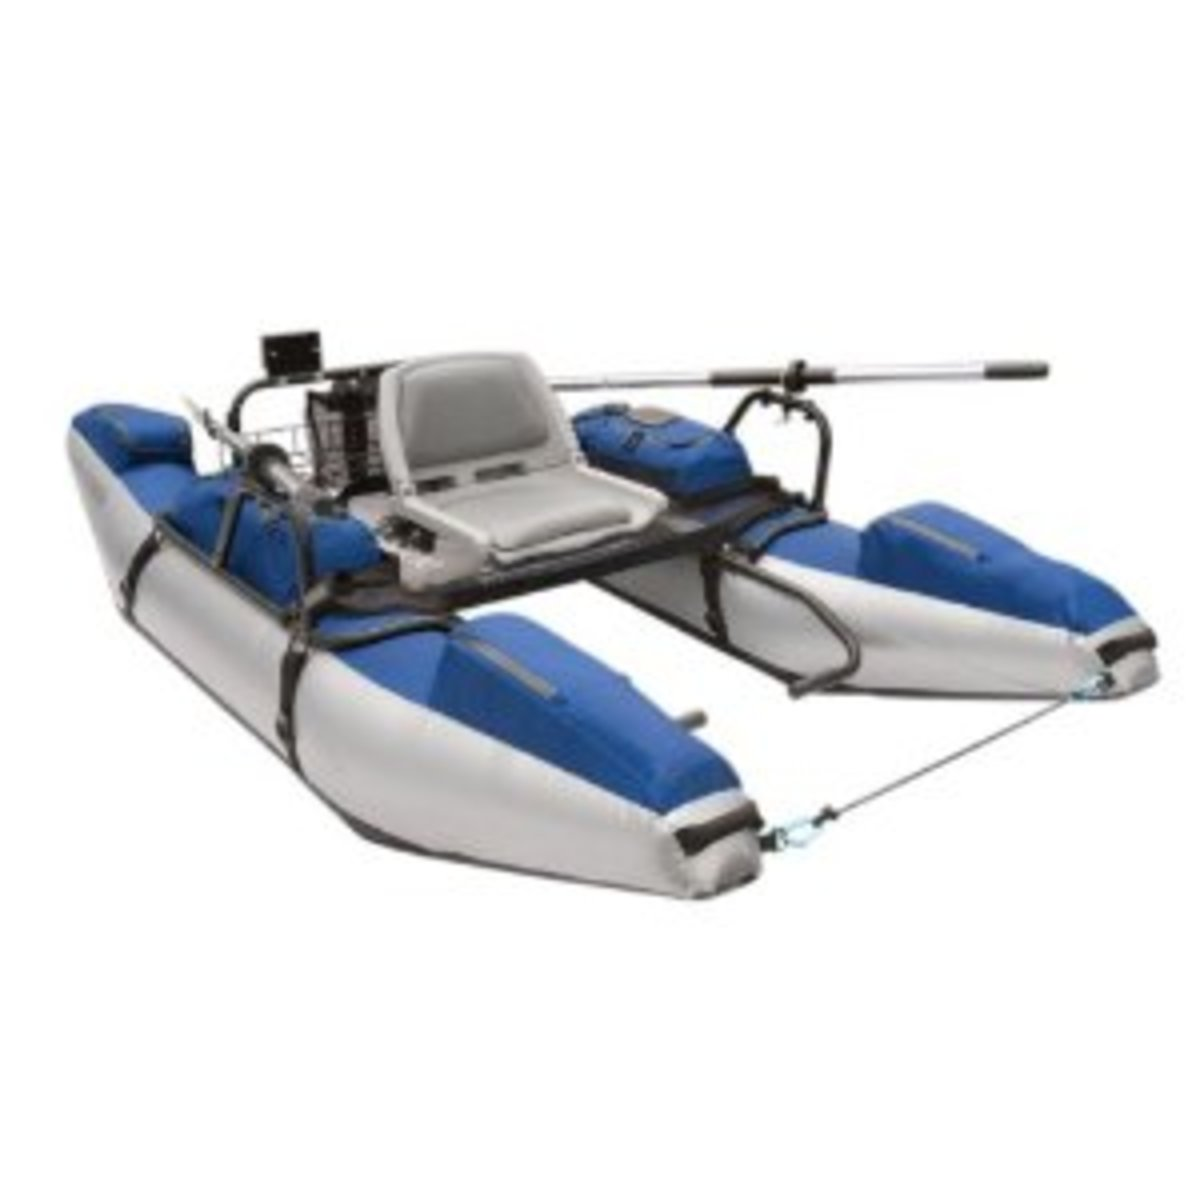 Rogue Fly Fishing Pontoon Boat (Silver/Blue)